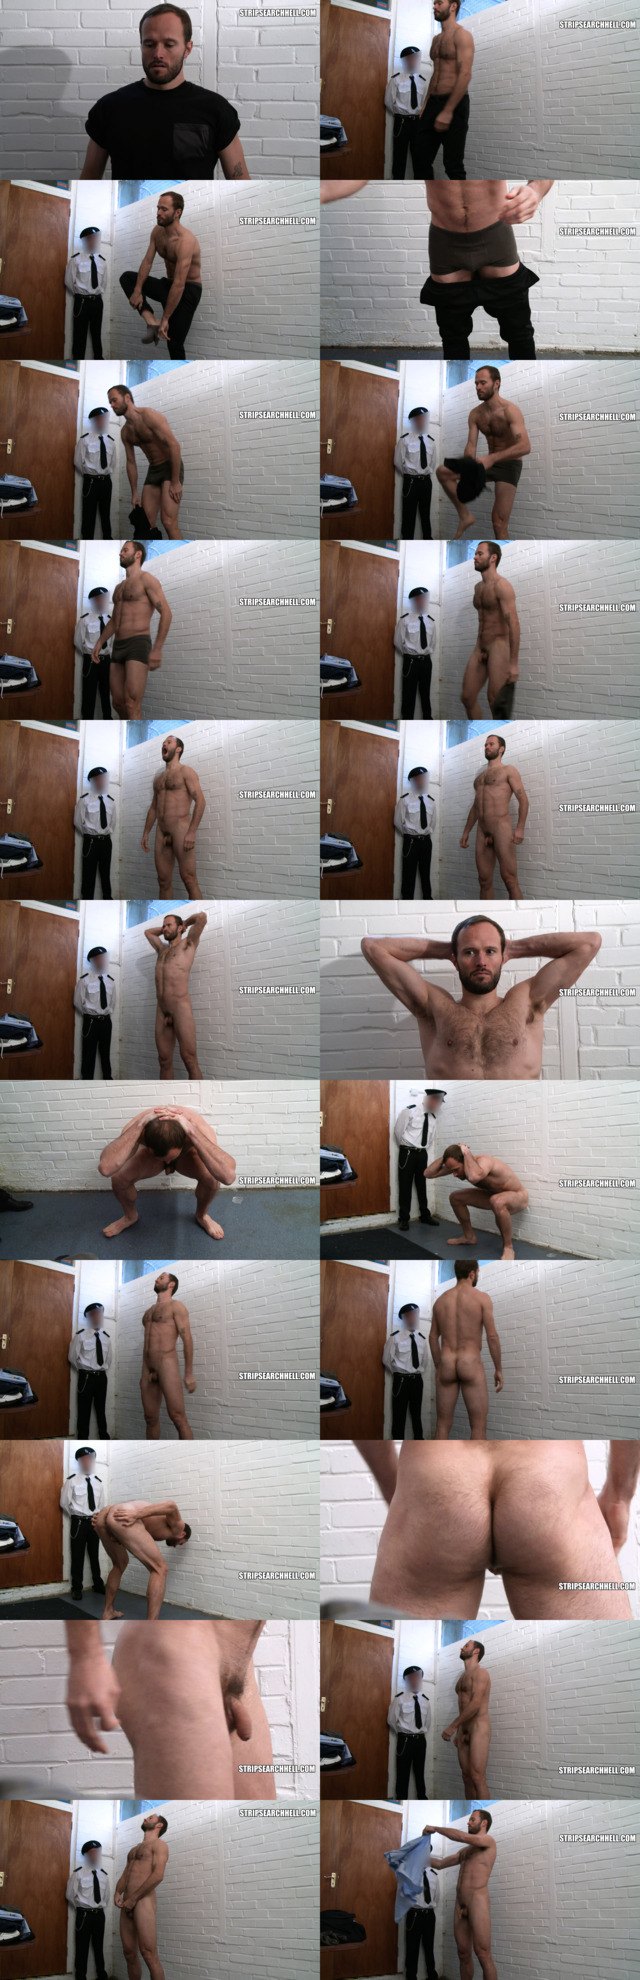 spy on prisoner man getting naked during strip search